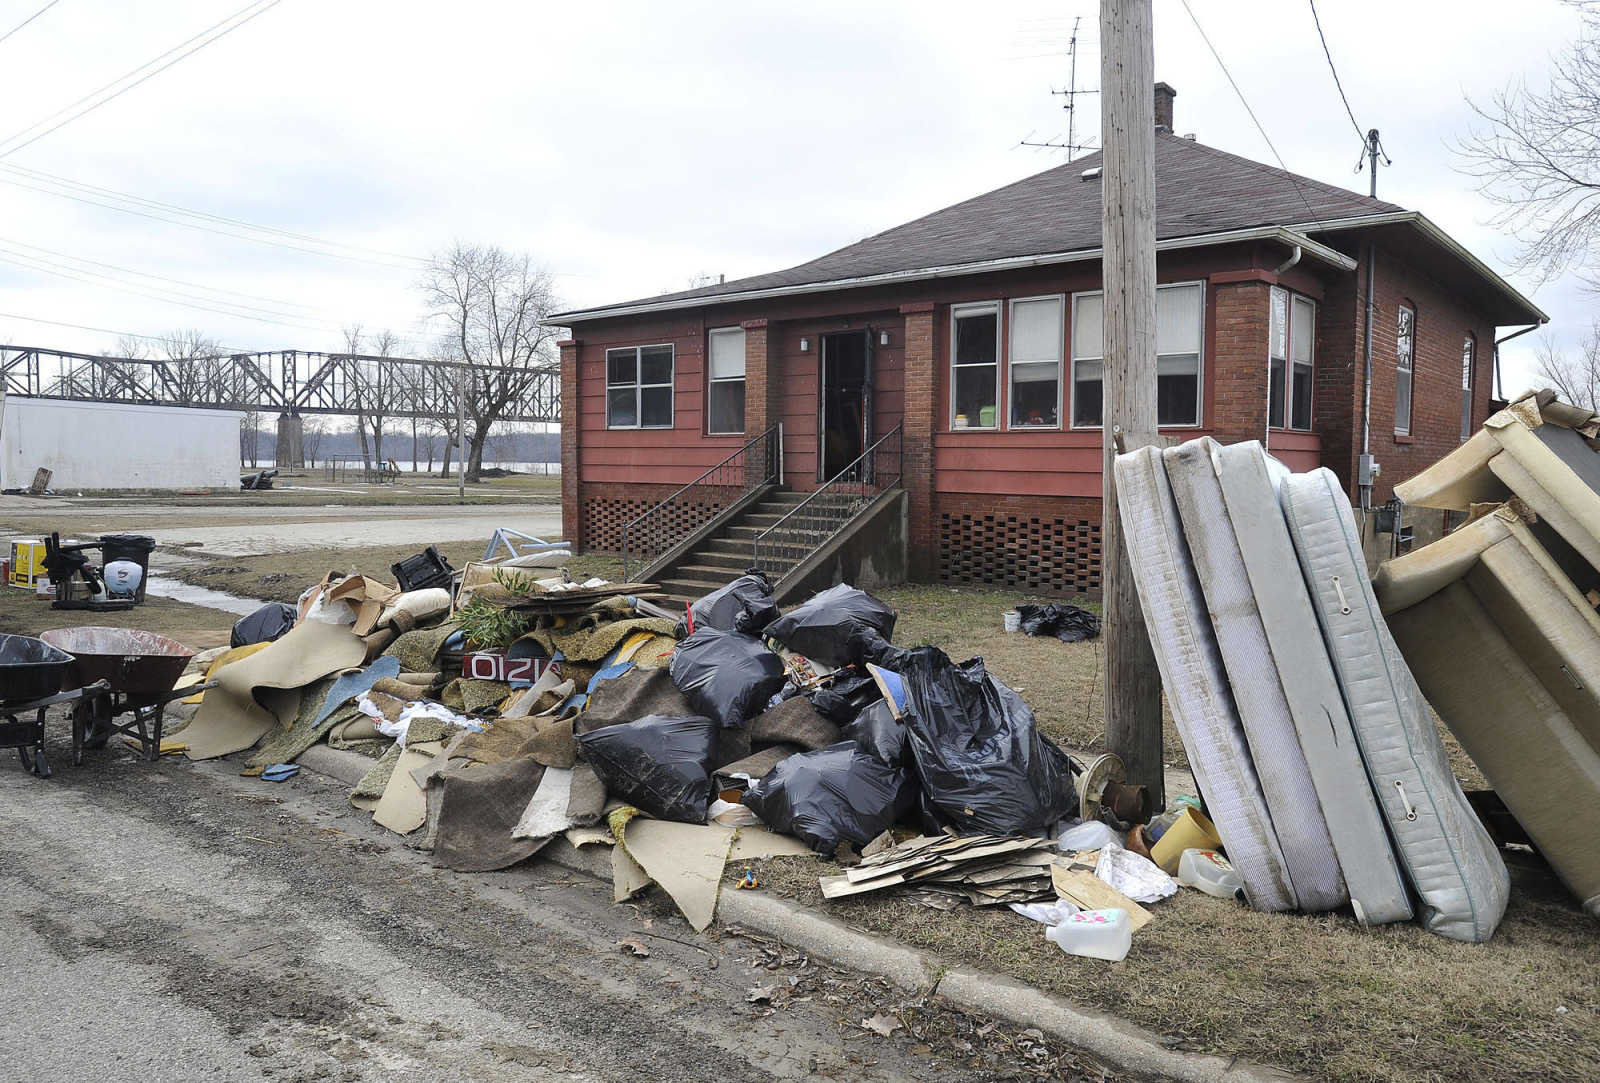 Illinois alexander county thebes - Flood Damaged Items Are Being Removed From A House In Thebes Illinois As Seen Jan 16 2016 Fred Lynch